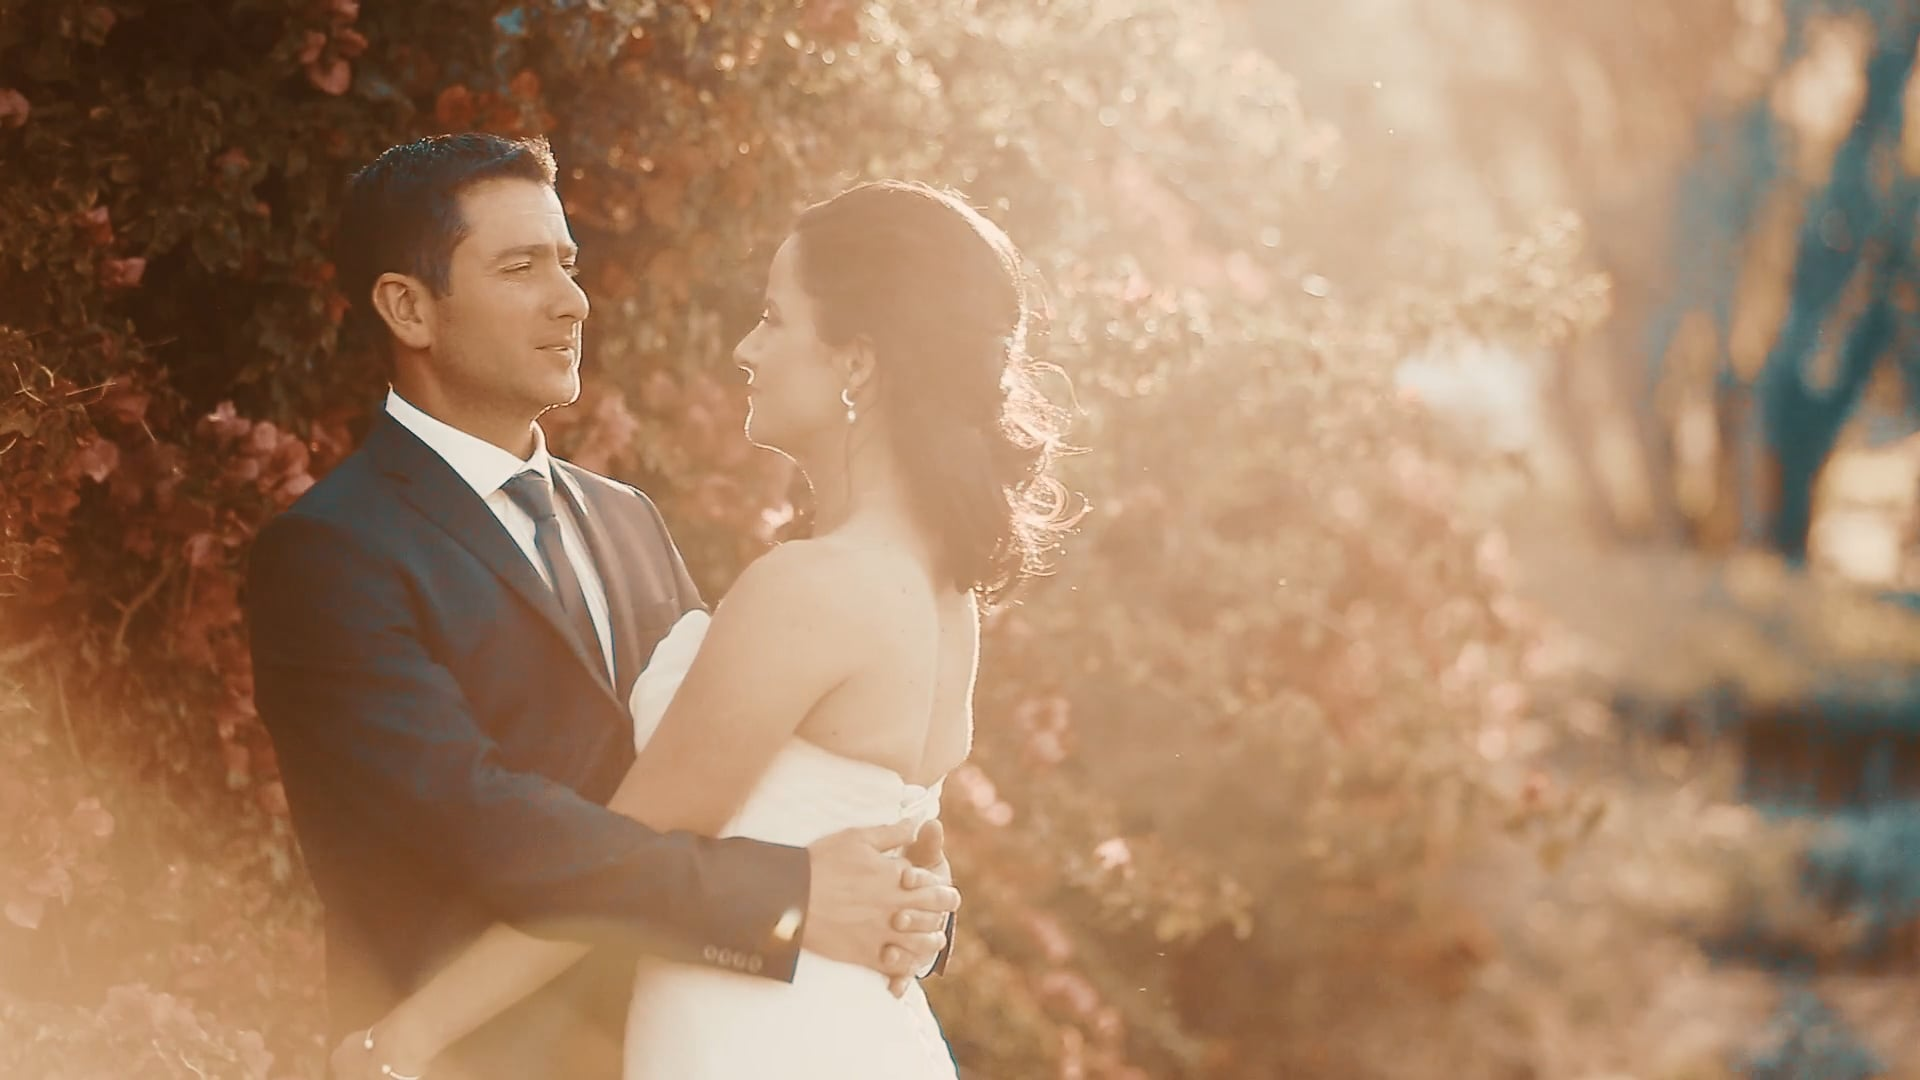 Jaco and Anja wedding preview, Jason's Hill Wine Esate Rawsonville - 20 October 2018